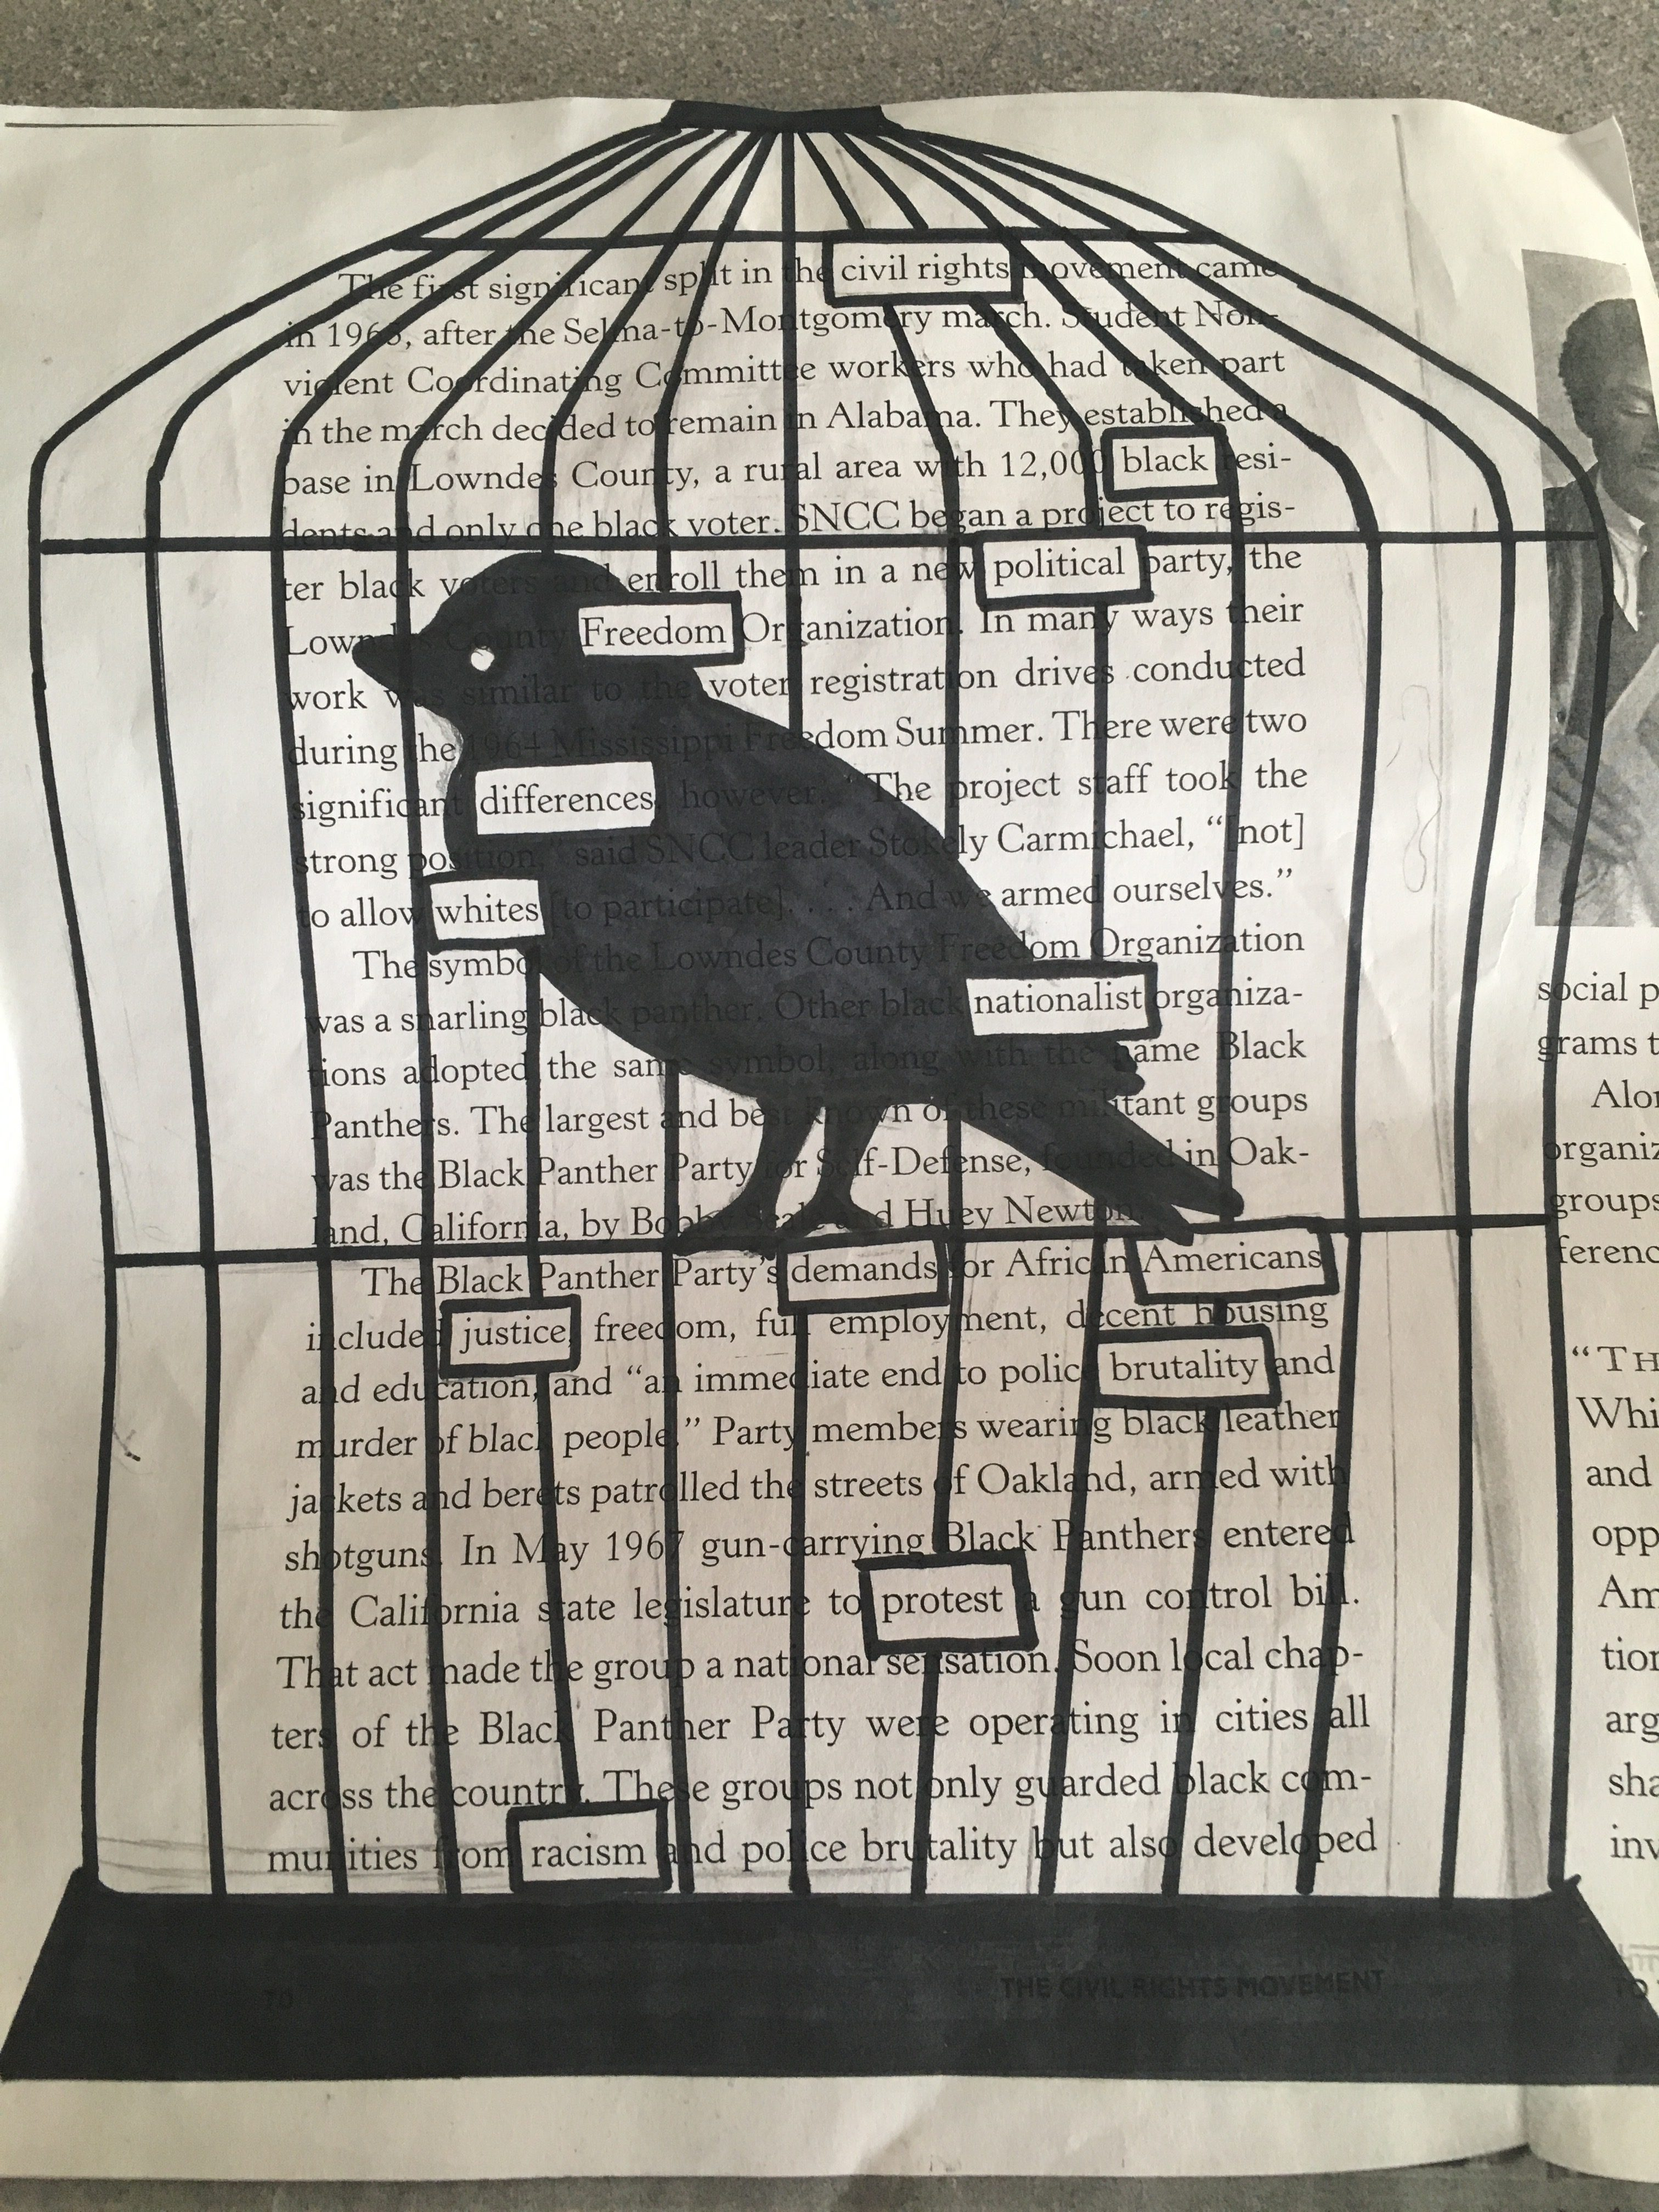 I Know Why The Cage Bird Sings Poemysis Of I Know